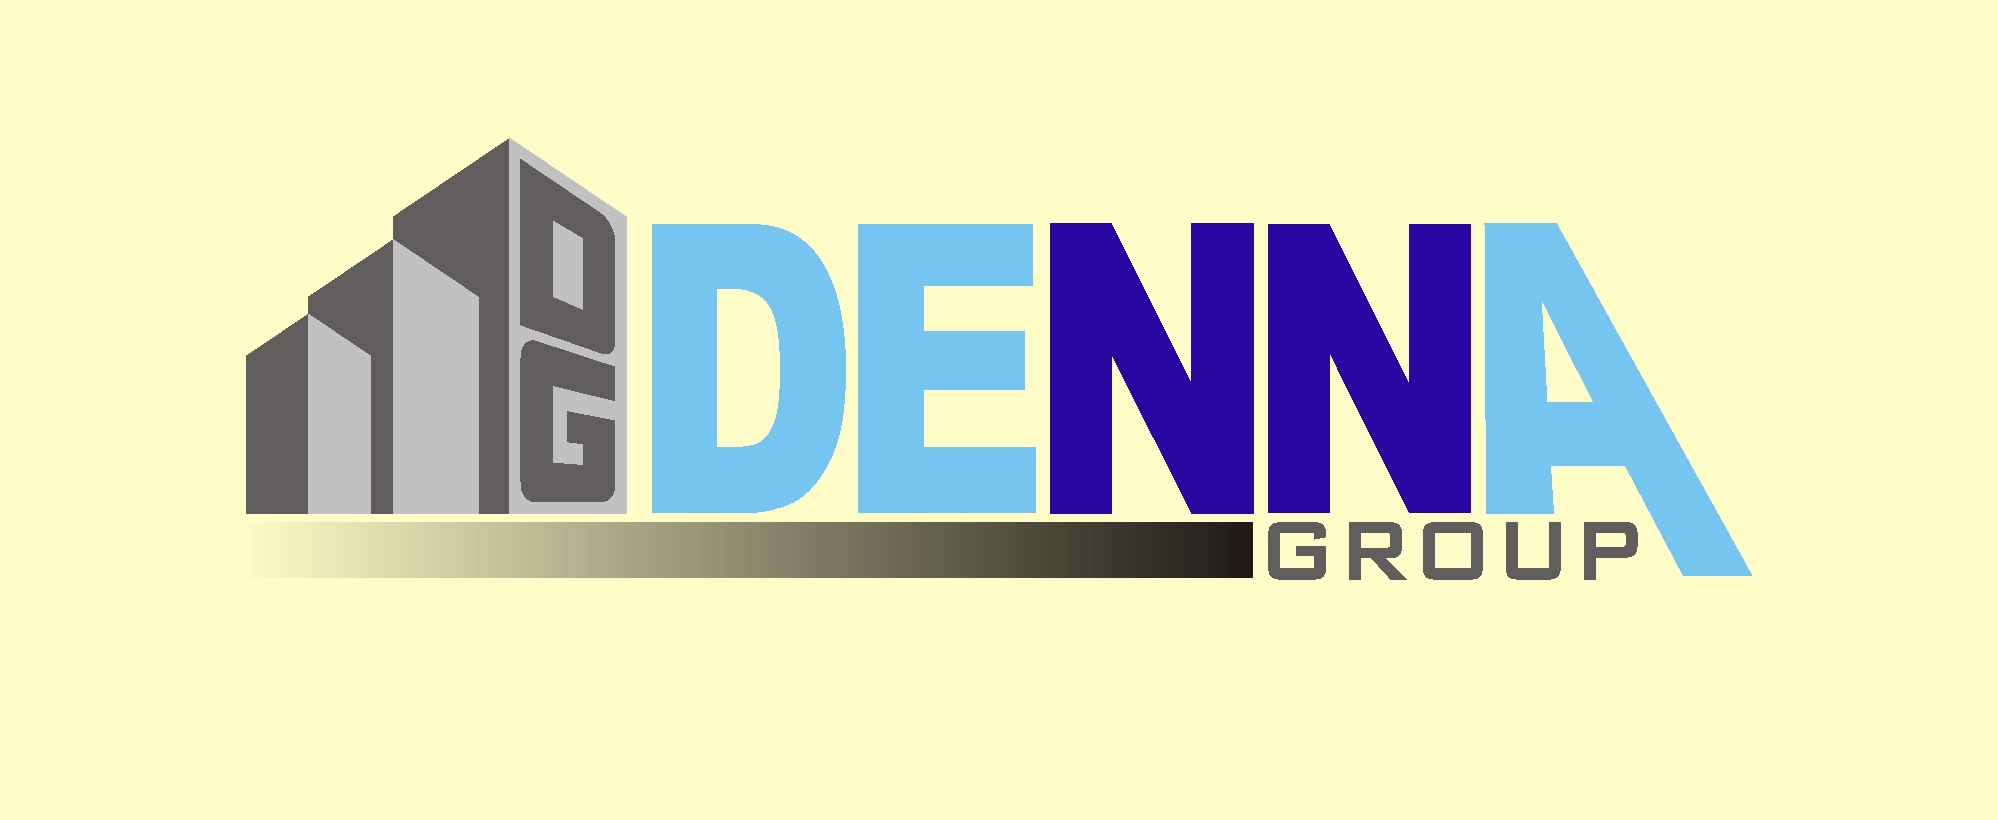 Logo Design by Arthur Aquino - Entry No. 125 in the Logo Design Contest Denna Group Logo Design.